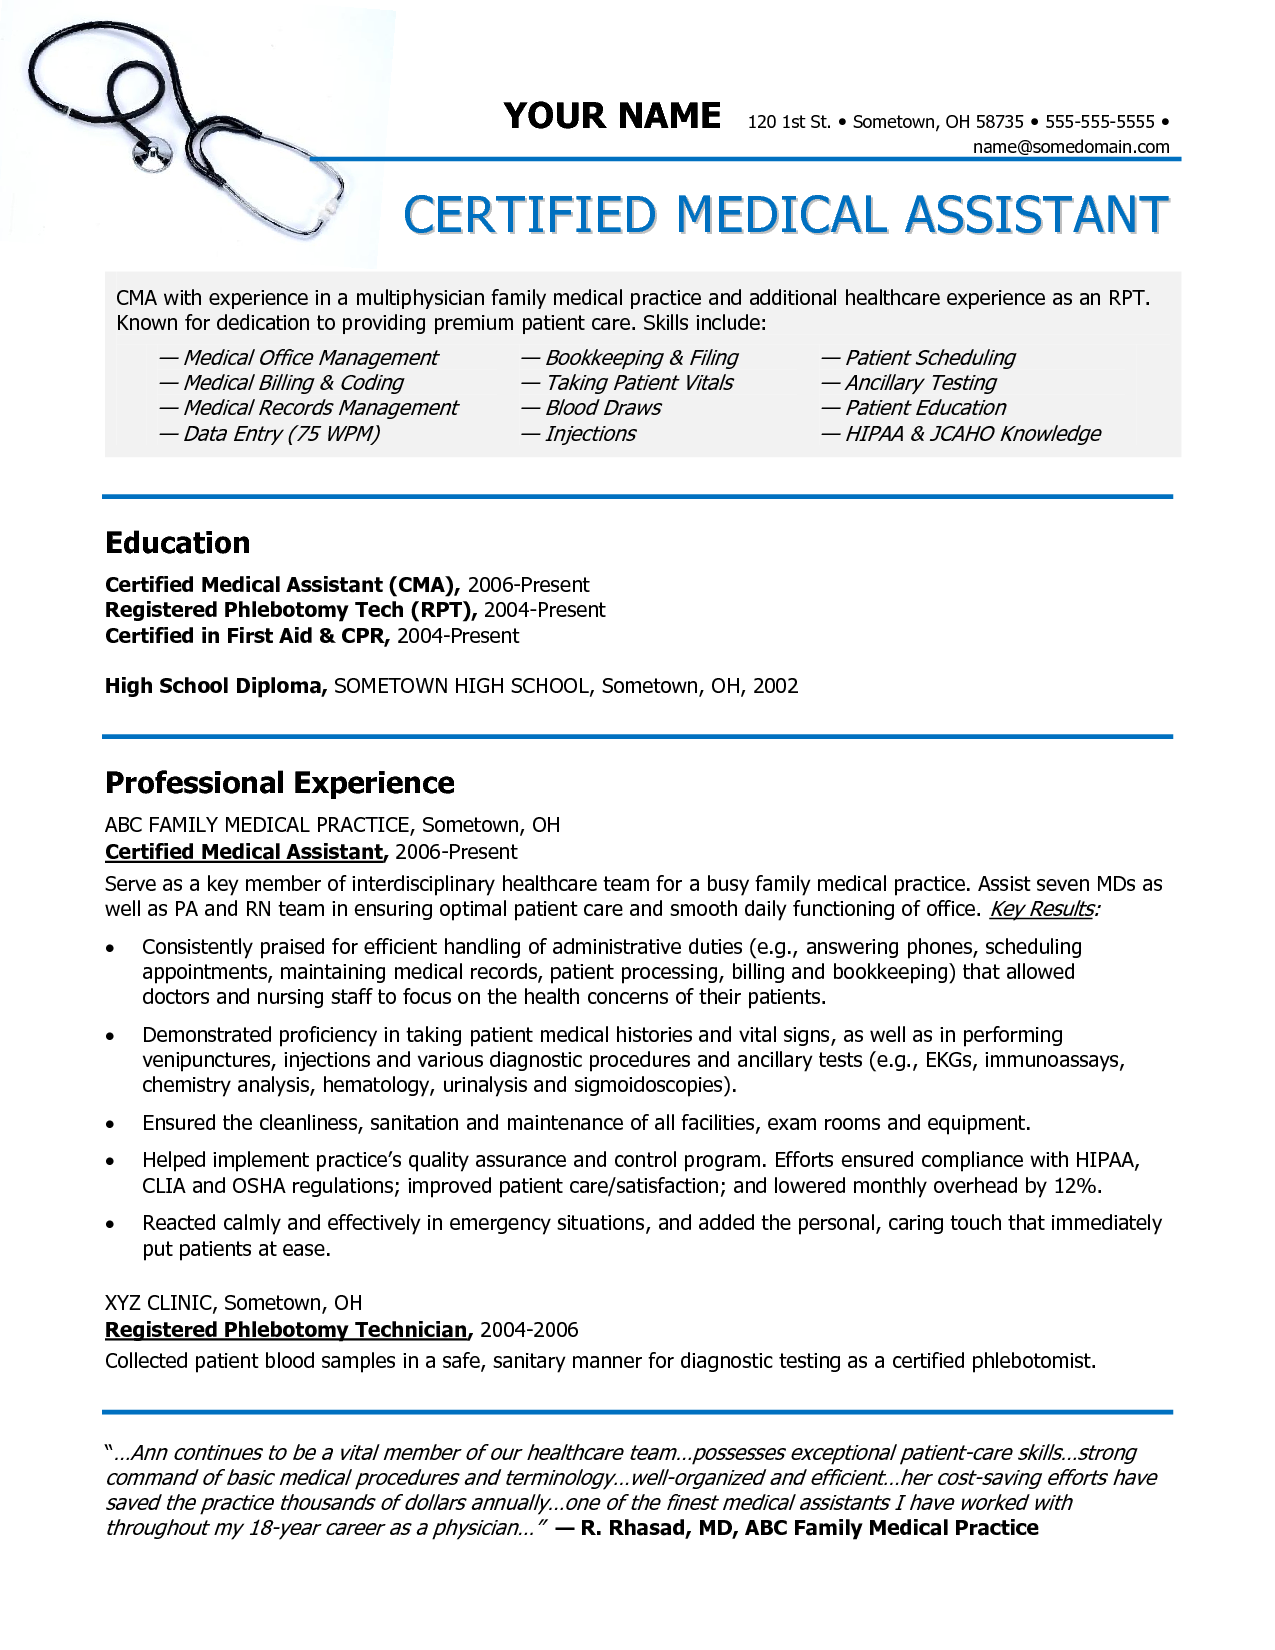 Resume Examples Medical Assistant | Medical assistant resume ...